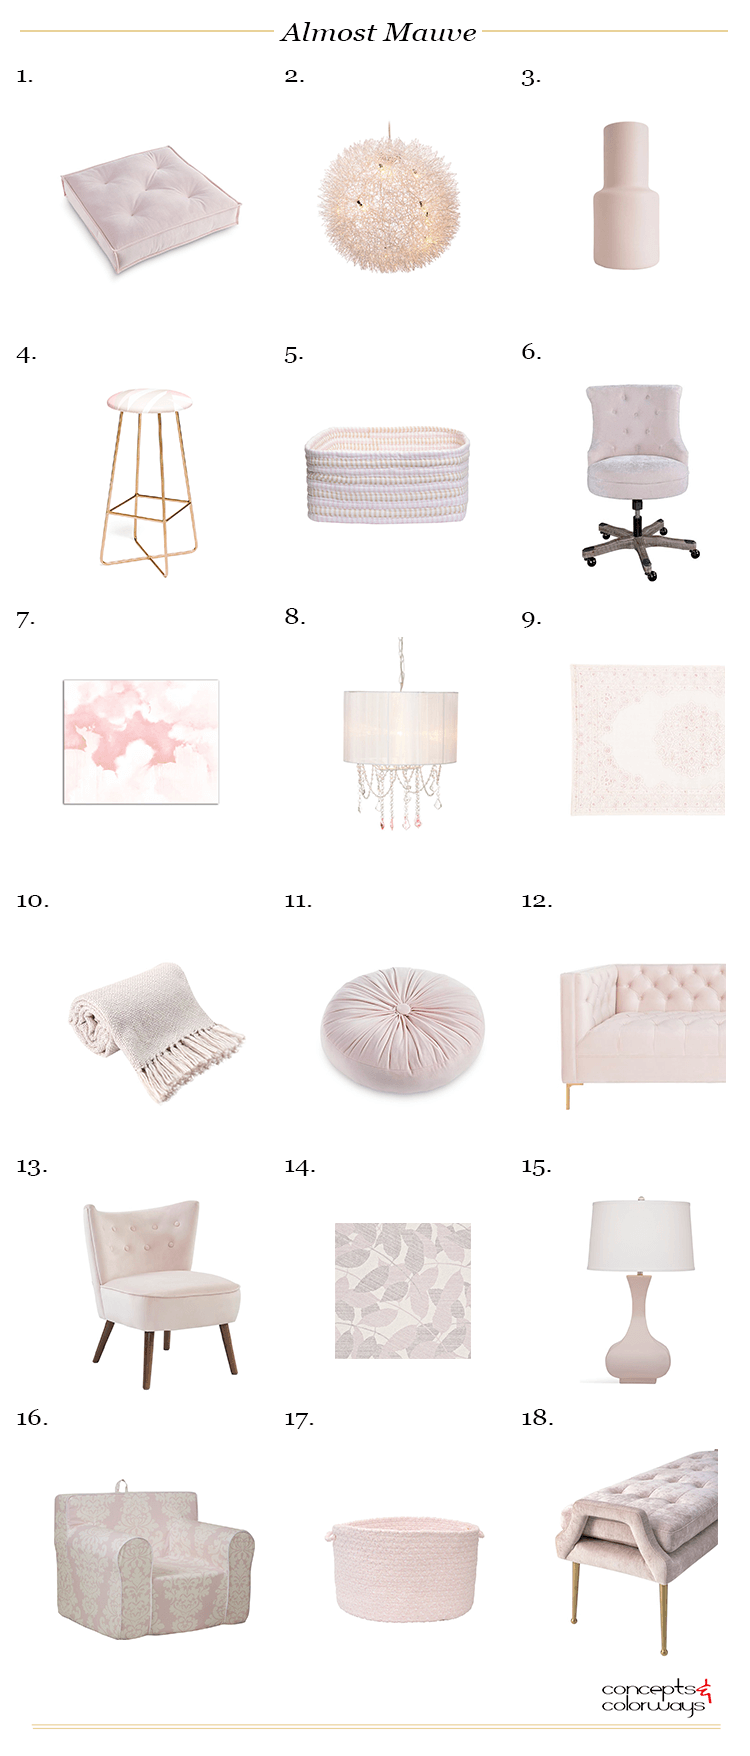 pantone almost mauve, blush pink, blush pink decor, blush pink chair, blush pink sofa, blush pink rug, pale pink, light mauve, interior color trends, light pink